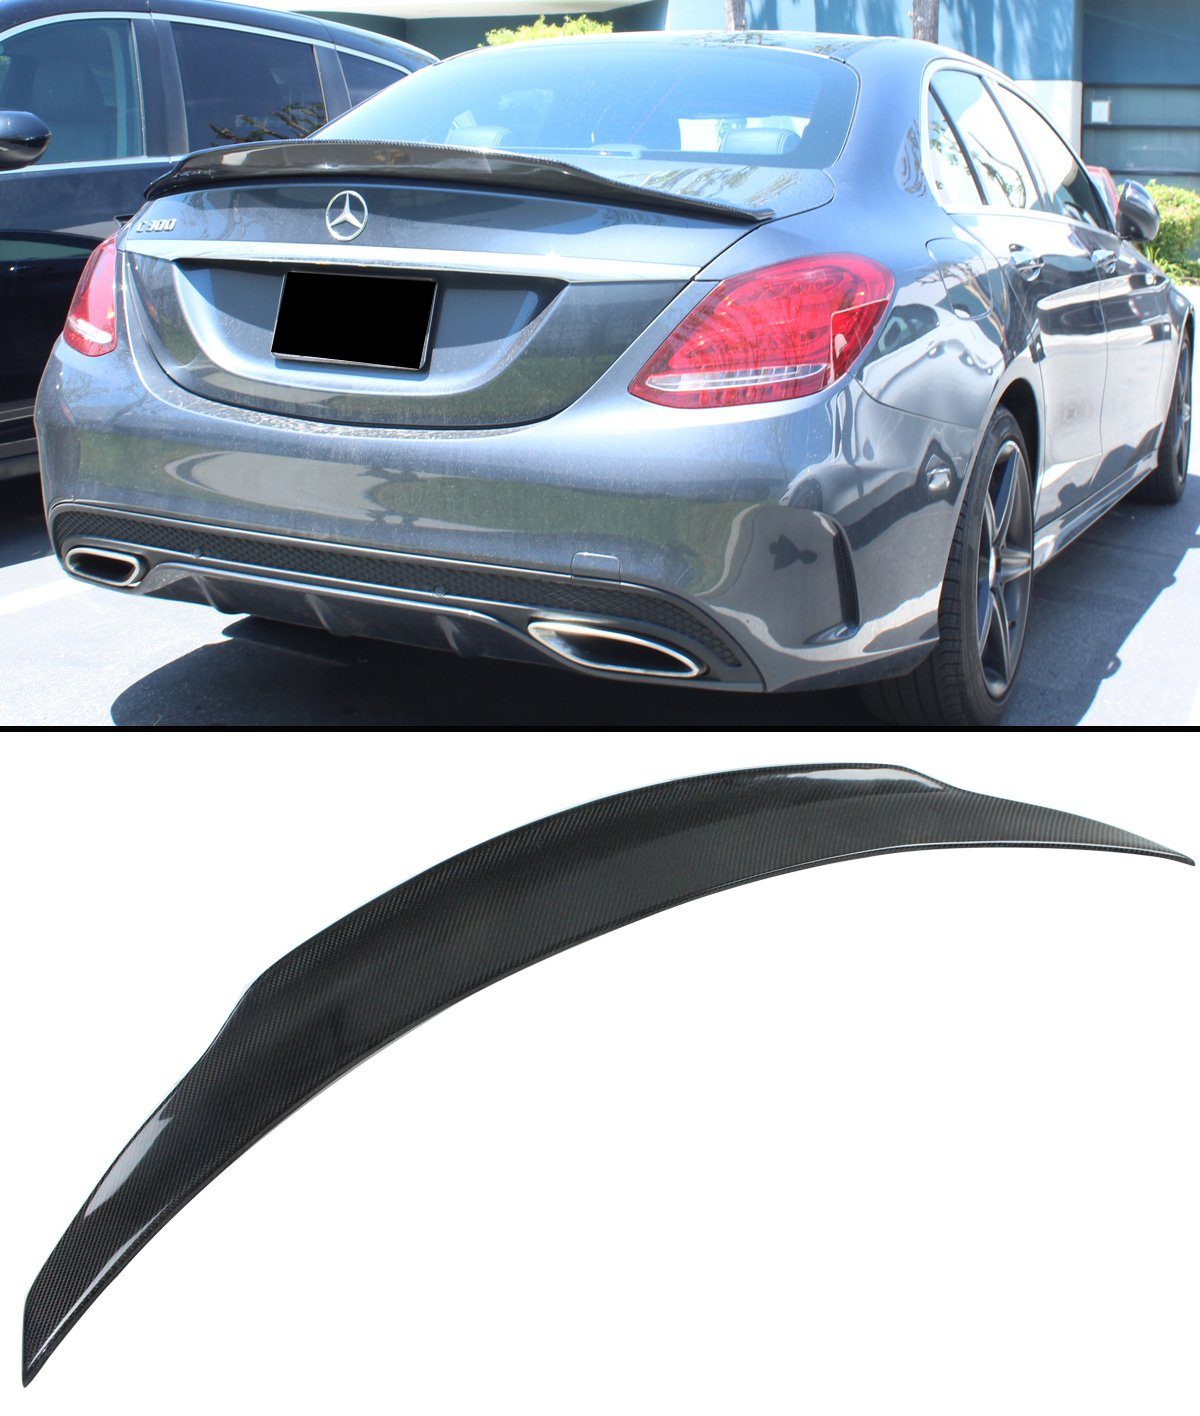 Cuztom Tuning Fits for 2015-2018 Mercedes Benz W205 C-Class & C63 AMG PS  Highkick Style Carbon Fiber Trunk Spoiler Wing